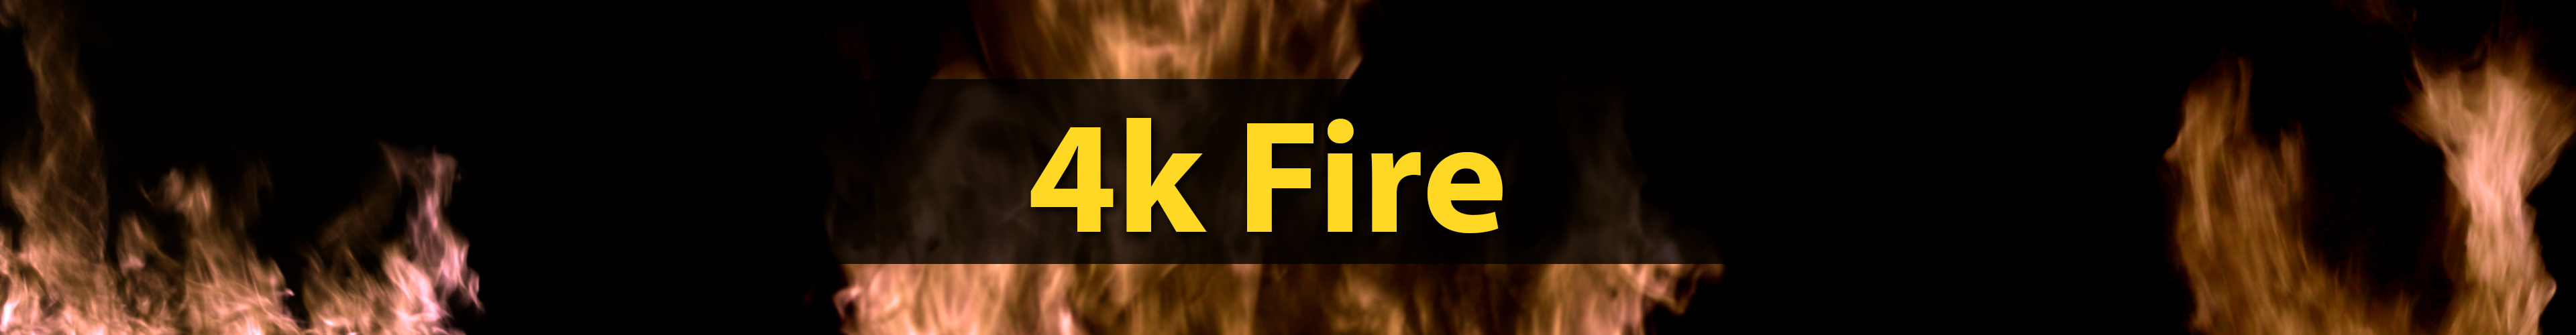 Fire stock footage: Green Screened Flame & Fire video effects